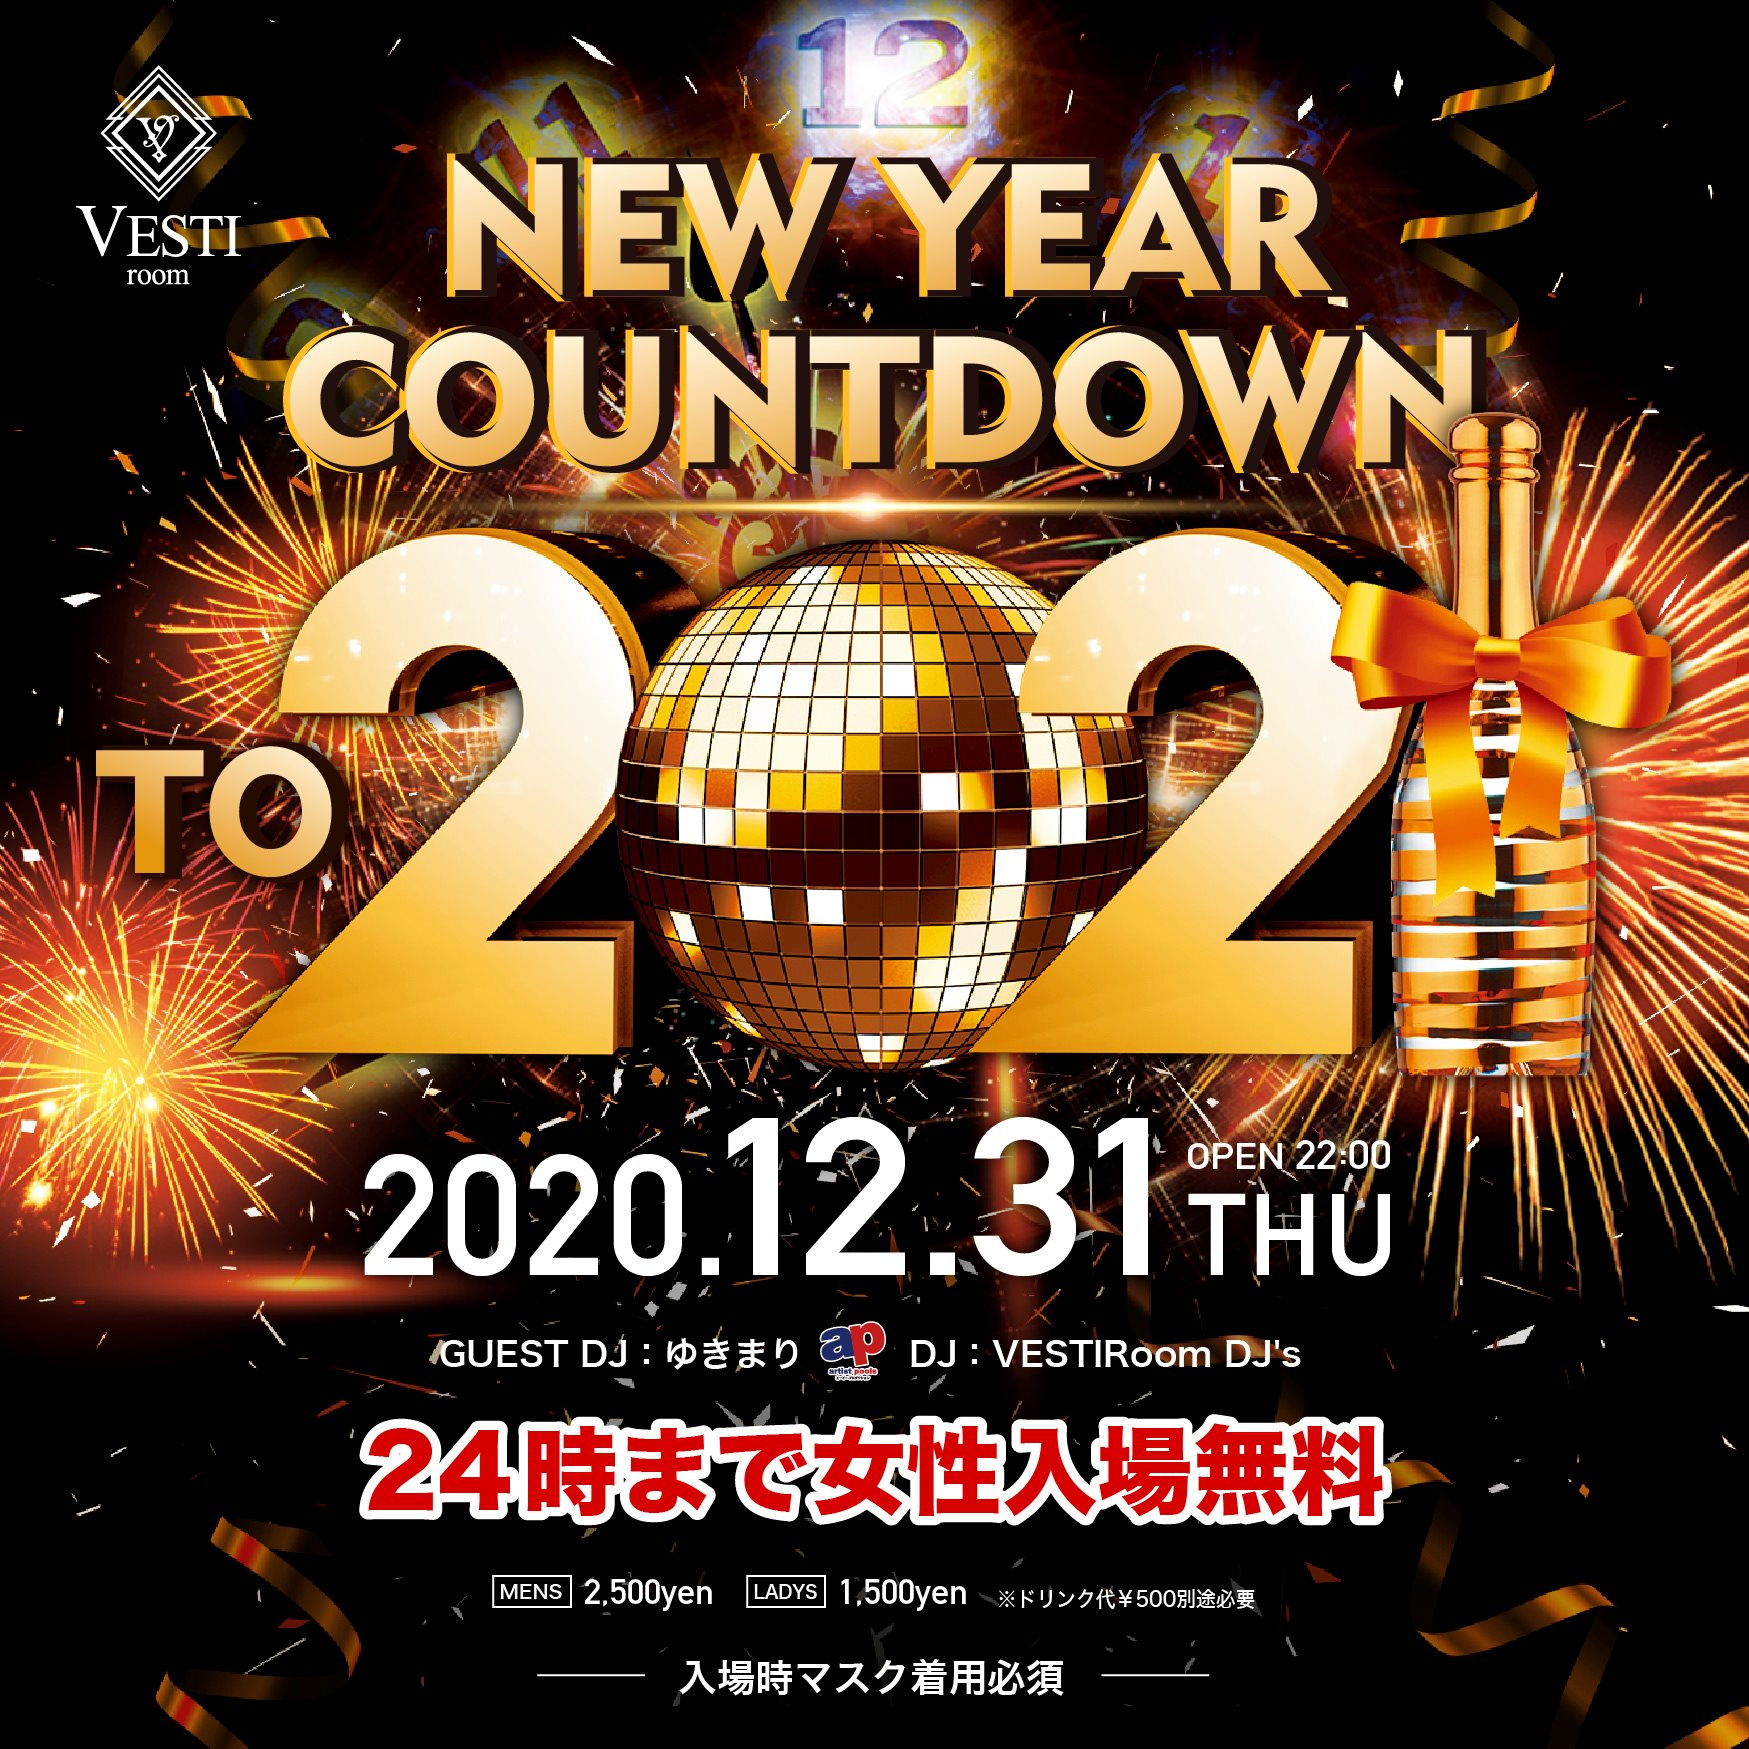 NEW YEAR COUNDDOWN PARTY